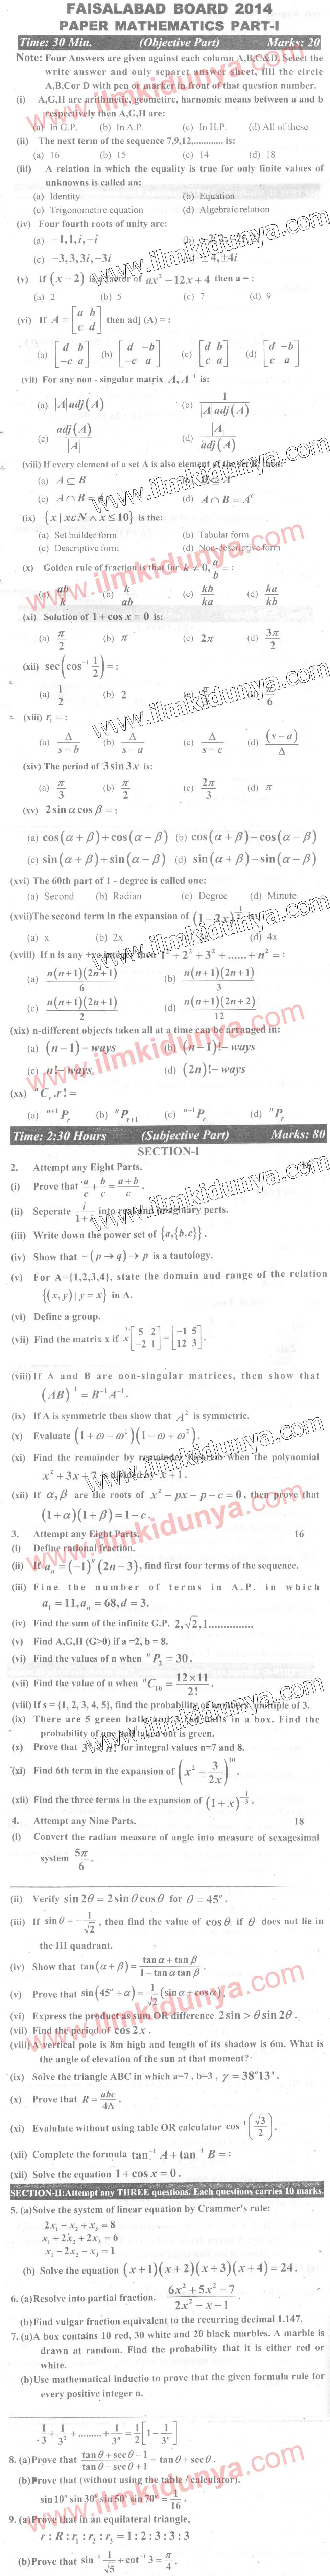 intermediate 2 mathematics past papers Nb - all examination papers are in pdf format to access these papers, it is required that a pdf viewer is available on your device.